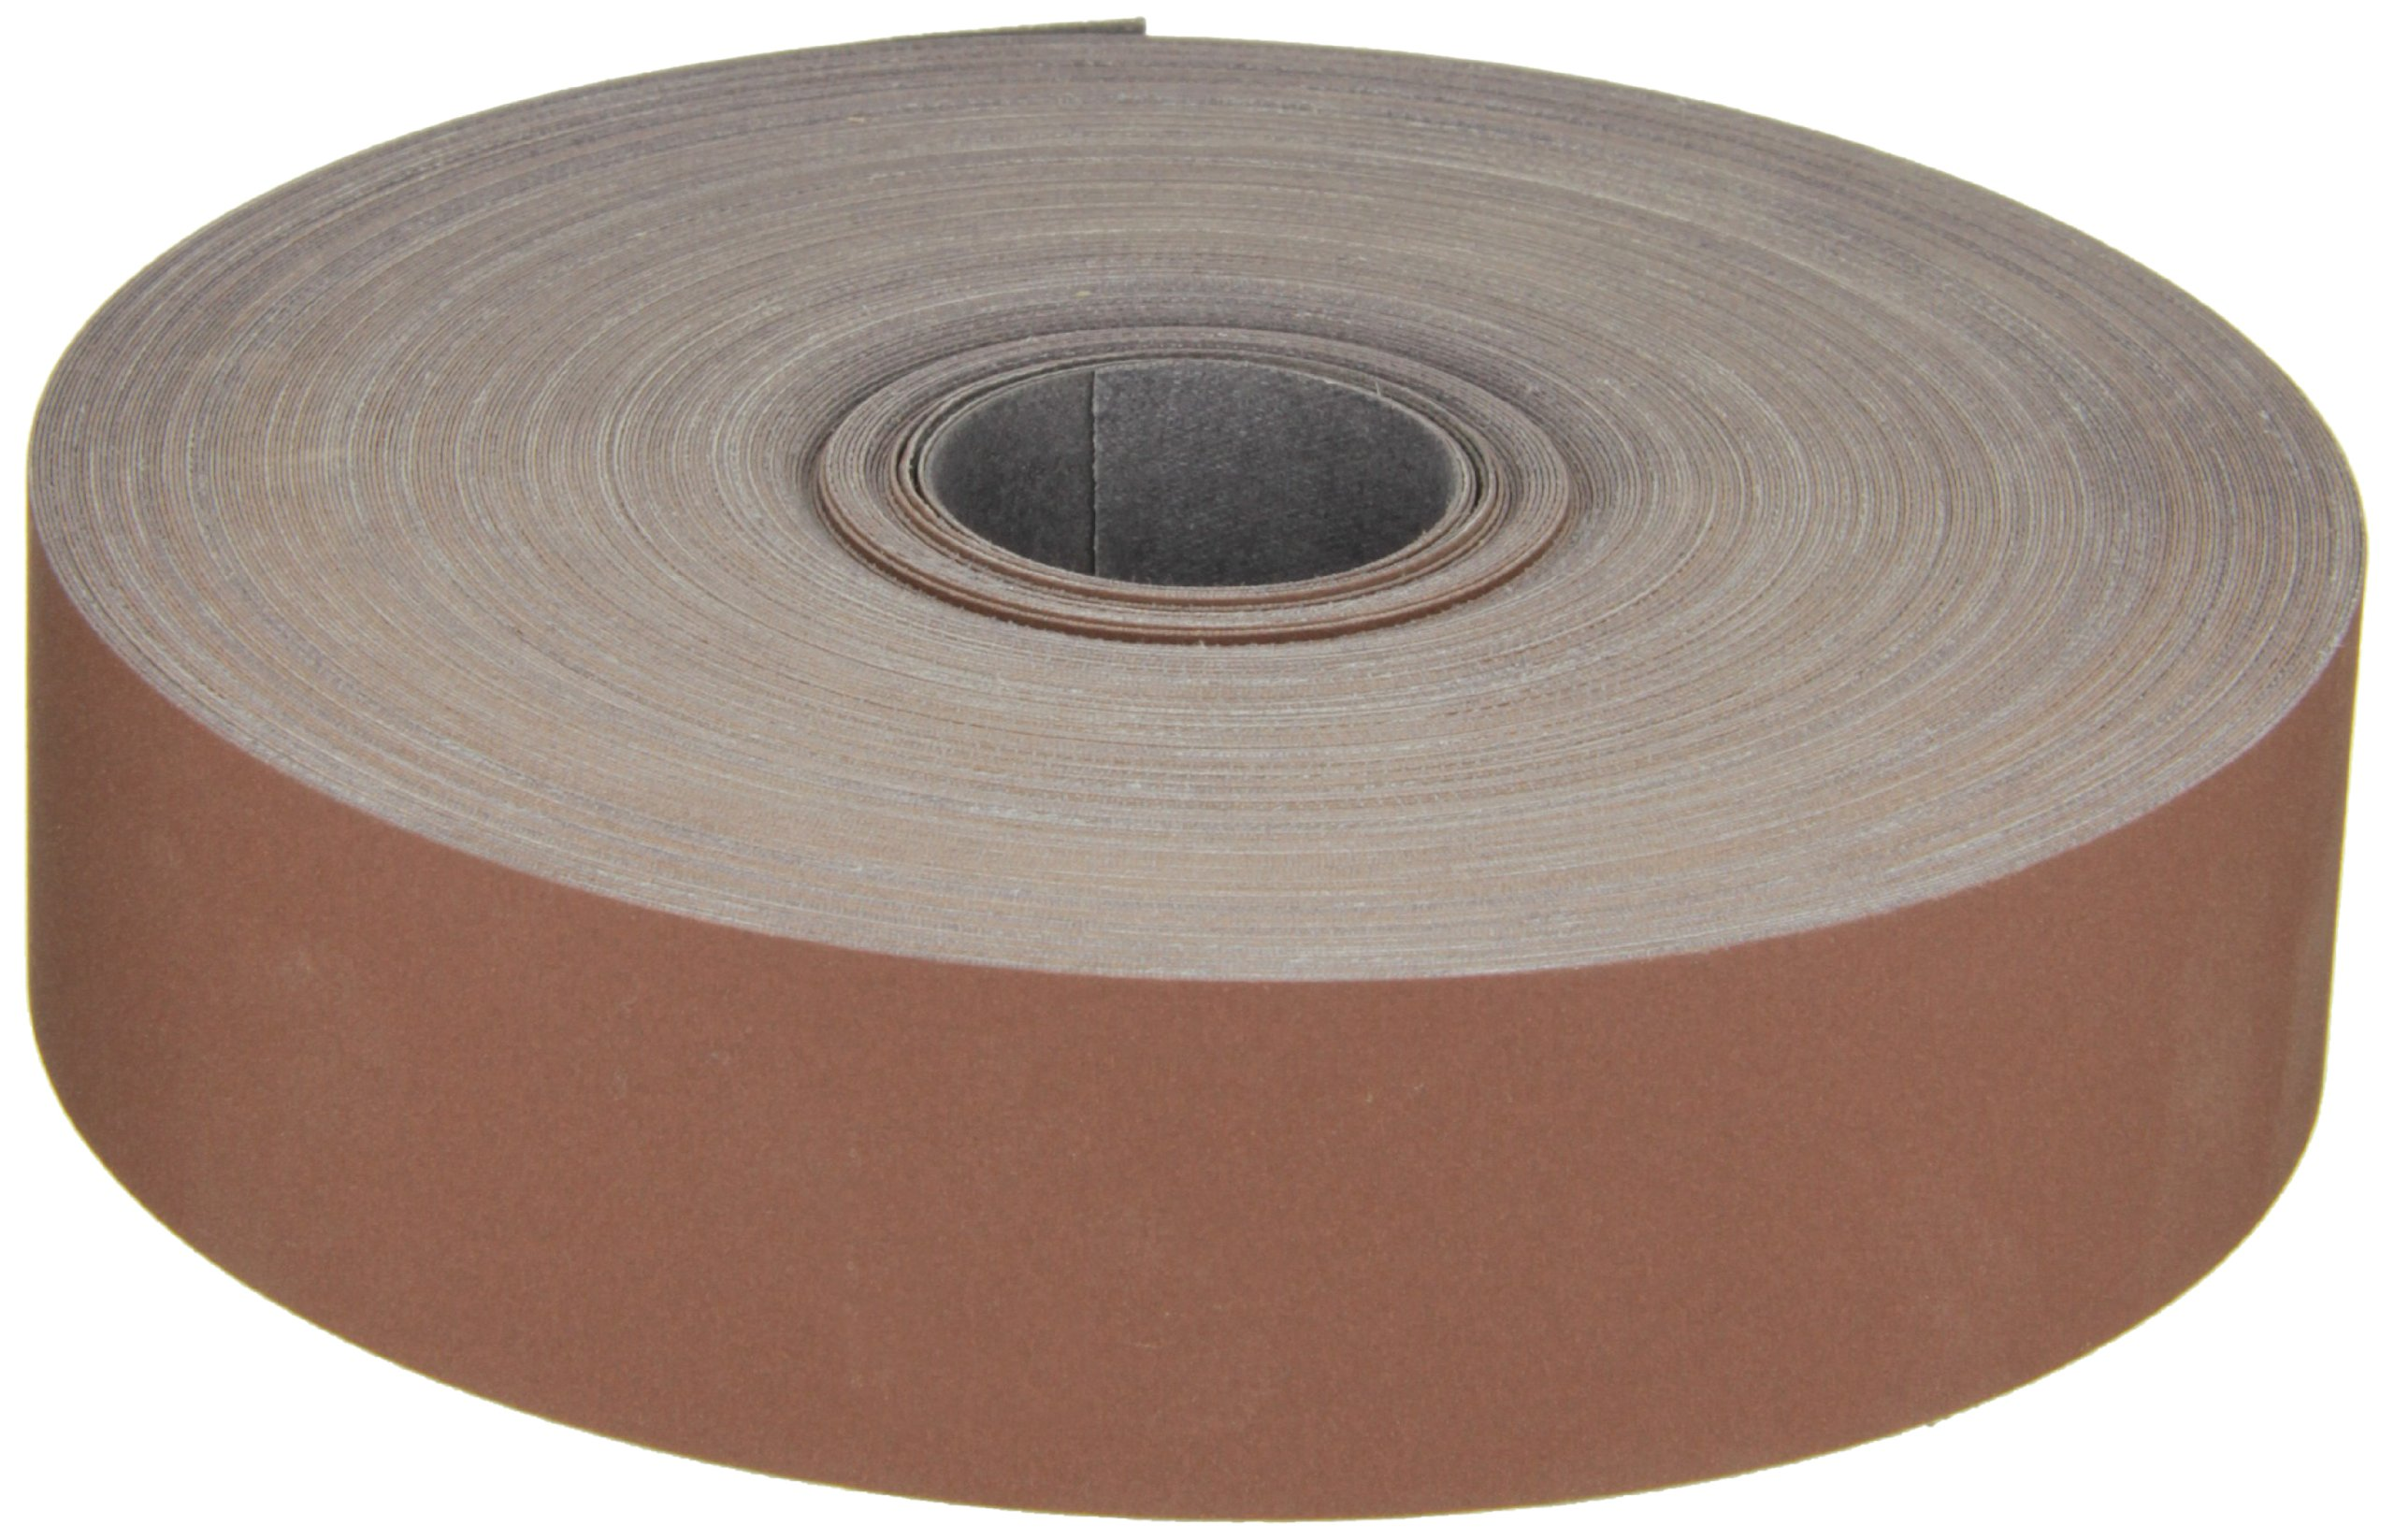 2 Width x 50 yds Length 3M Utility Cloth Roll 314D Pack of 1 Maroon Aluminum Oxide P120 Grit